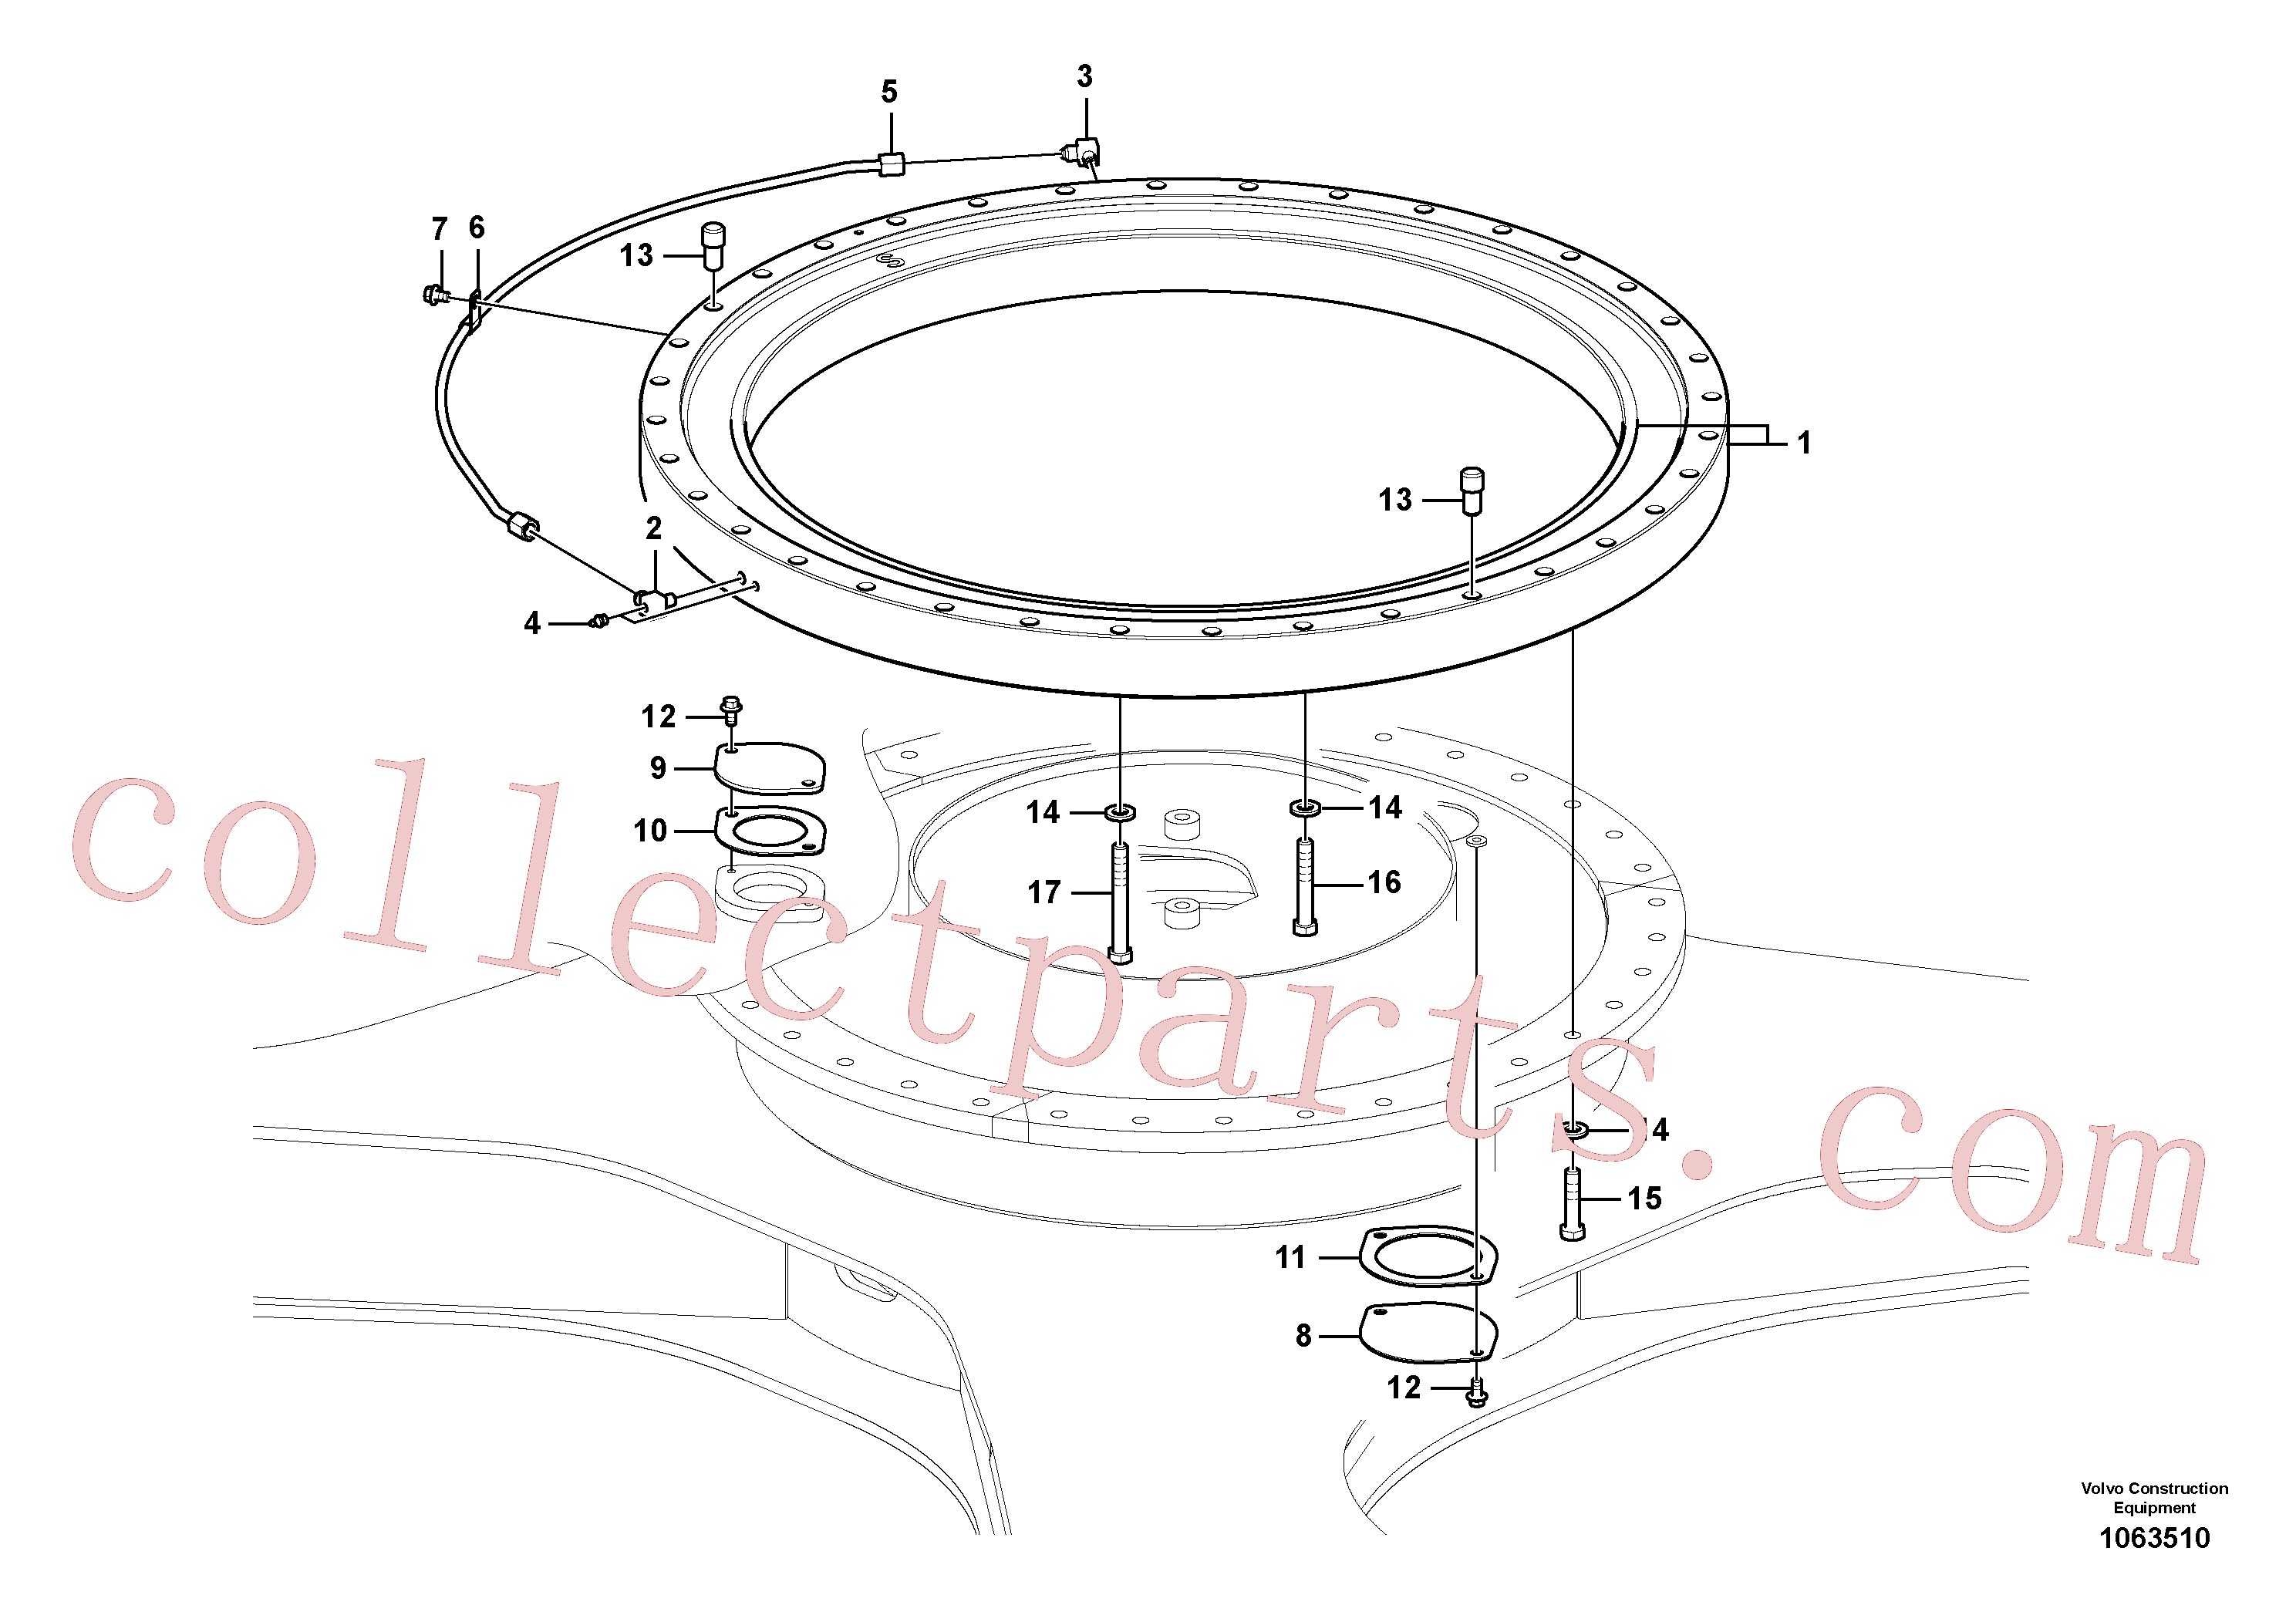 VOE14579588 for Volvo Swing system(1063510 assembly)